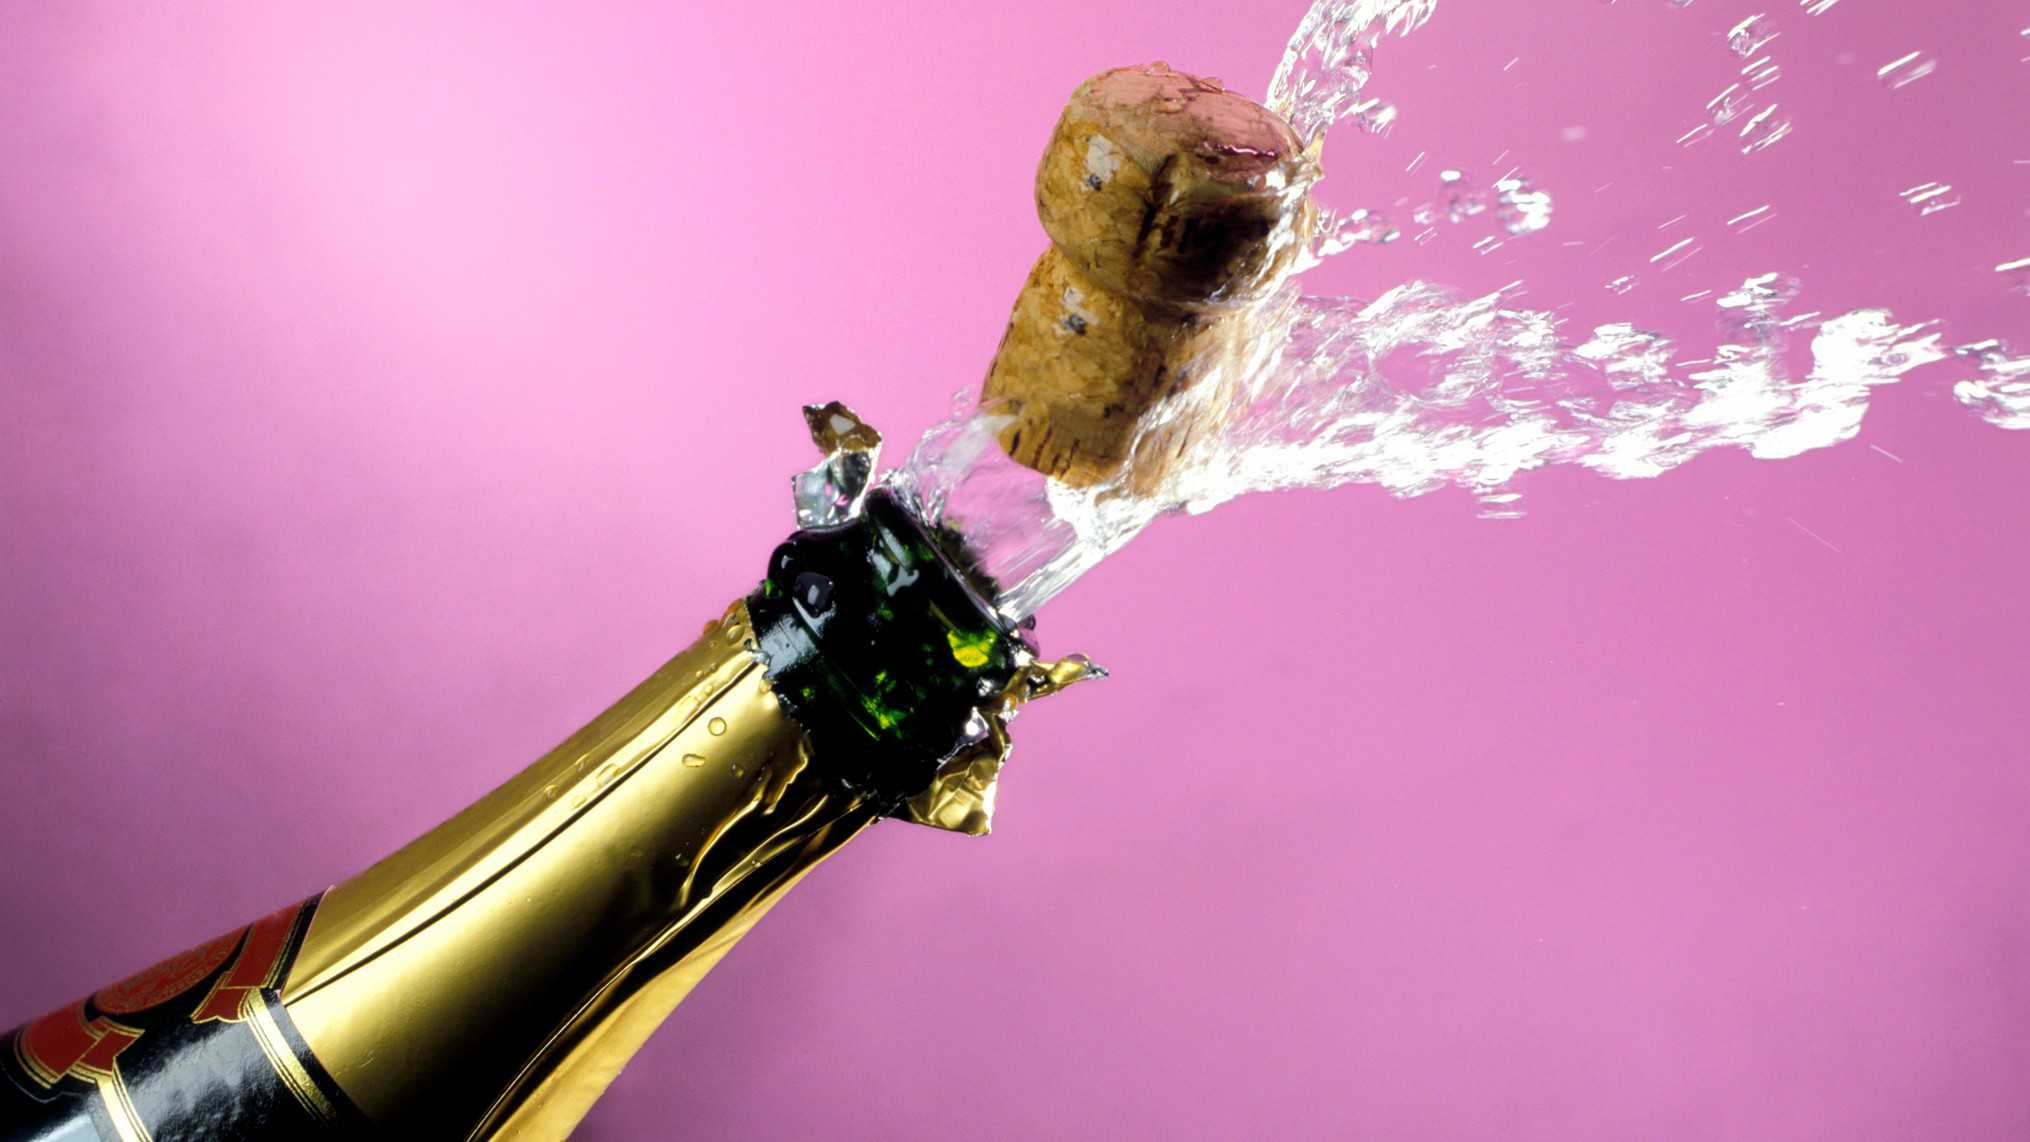 ASX miners iron ore A cork and bubbles burst from champagne bottle, indicating a rising share price in ASX wine companies